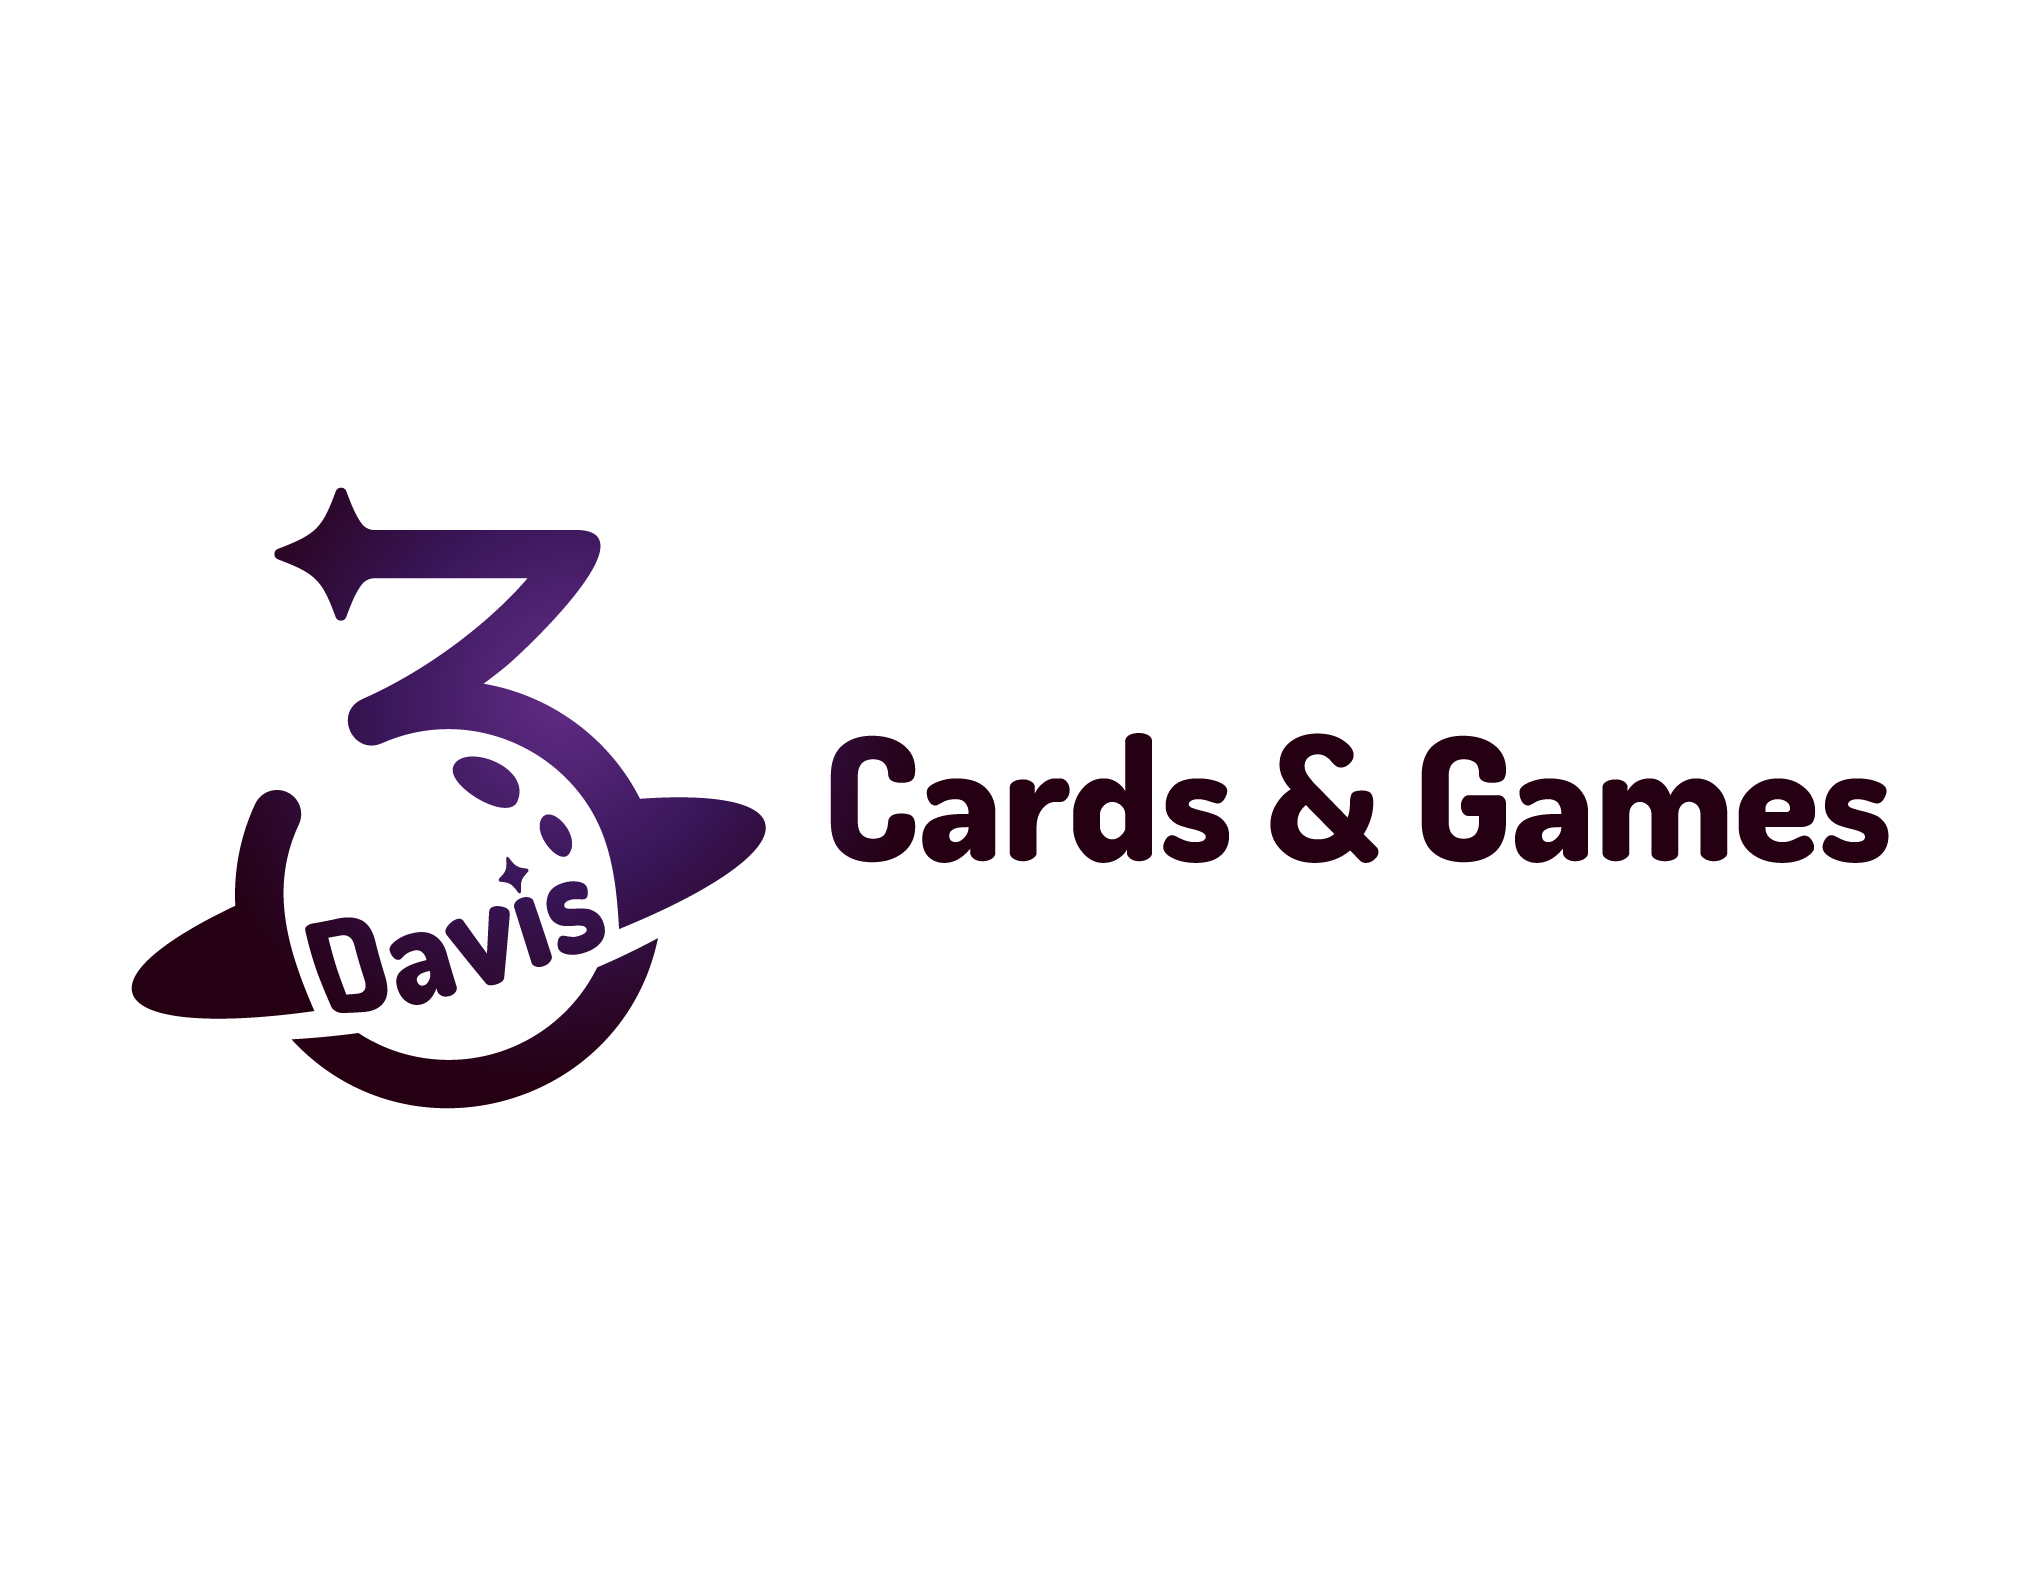 Gift Card | Davis Cards & Games